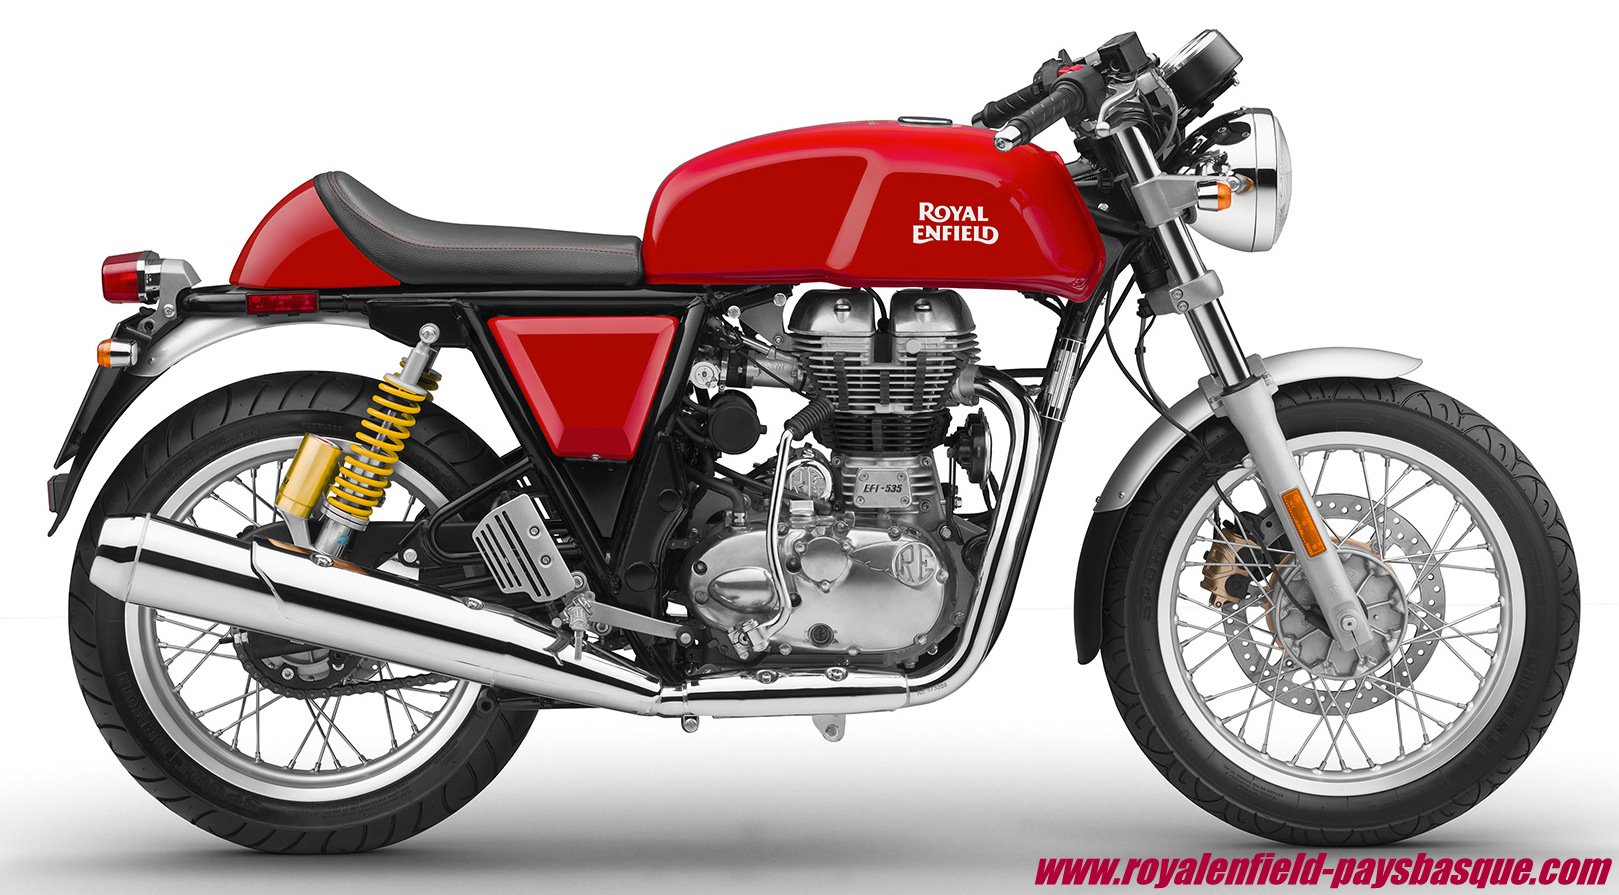 continental gt 535 rouge royal enfield pays basque. Black Bedroom Furniture Sets. Home Design Ideas